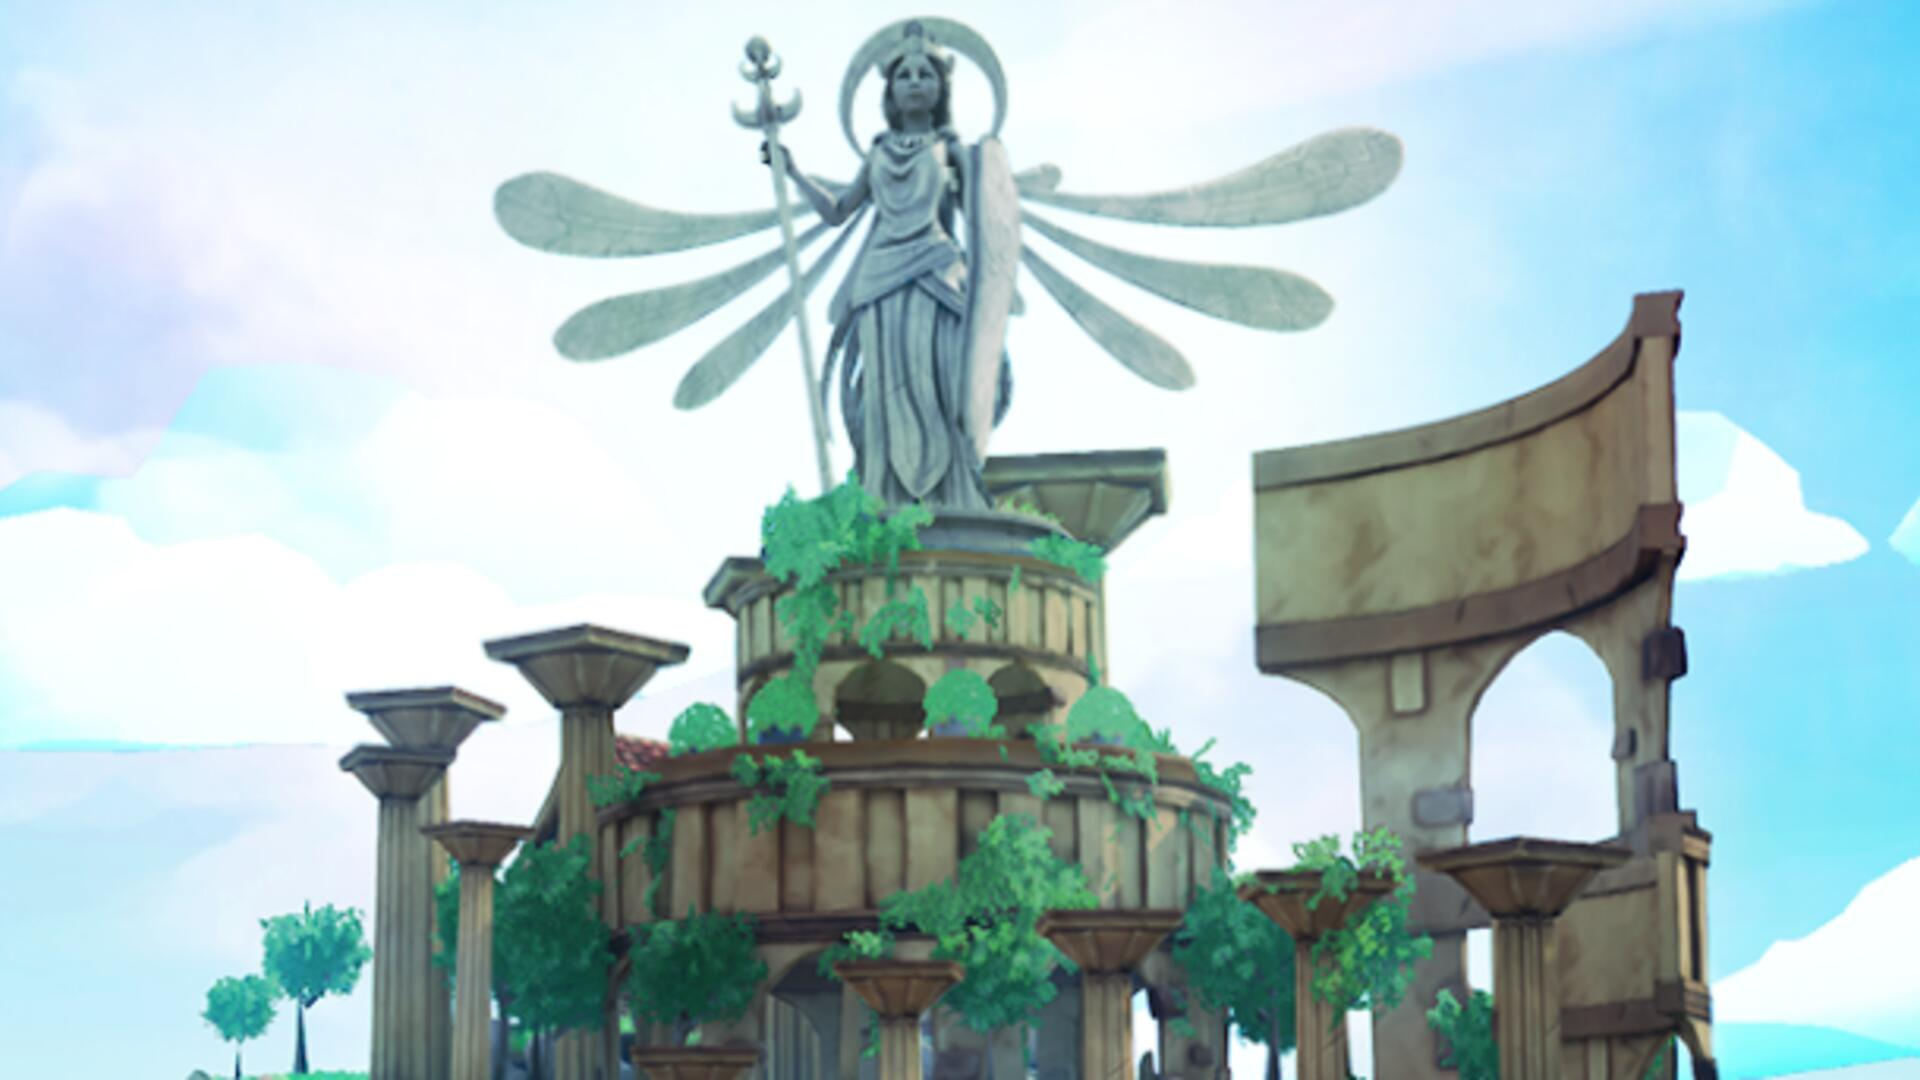 Kid Icarus Remake Done By Fans in Only 7 Weeks | USgamer